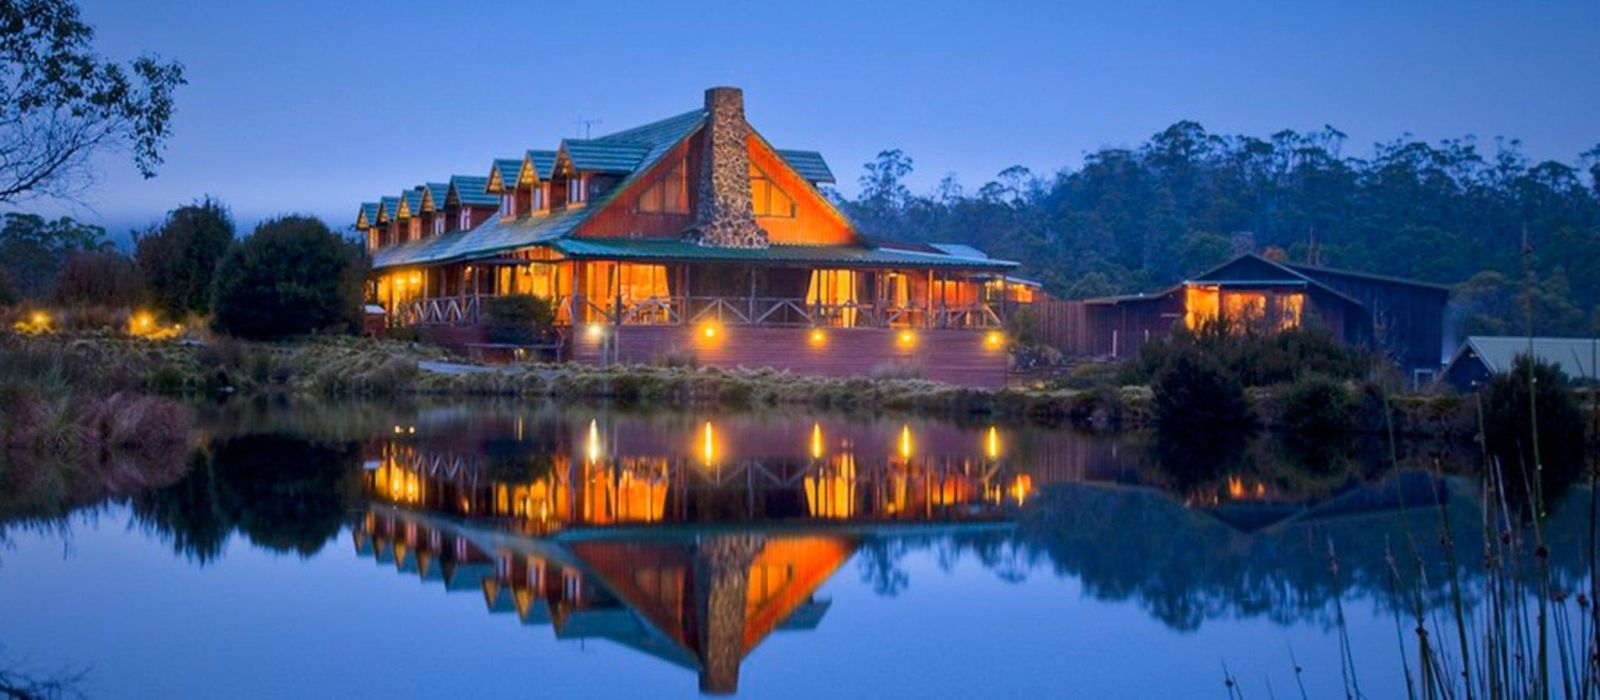 Hotel Peppers Cradle Mountain Lodge Australien